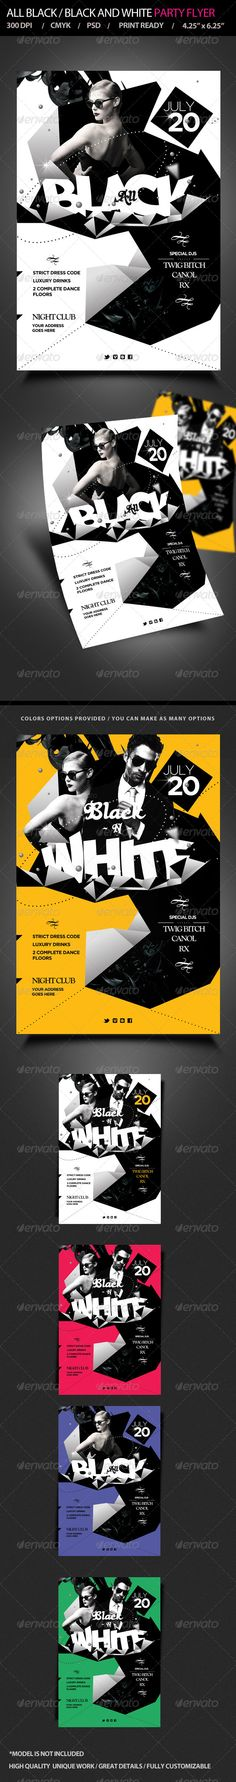 All Black / Black and White Party Flyer — Photoshop PSD #suit and tie #nightclub • Available here → https://graphicriver.net/item/all-black-black-and-white-party-flyer/5157776?ref=pxcr